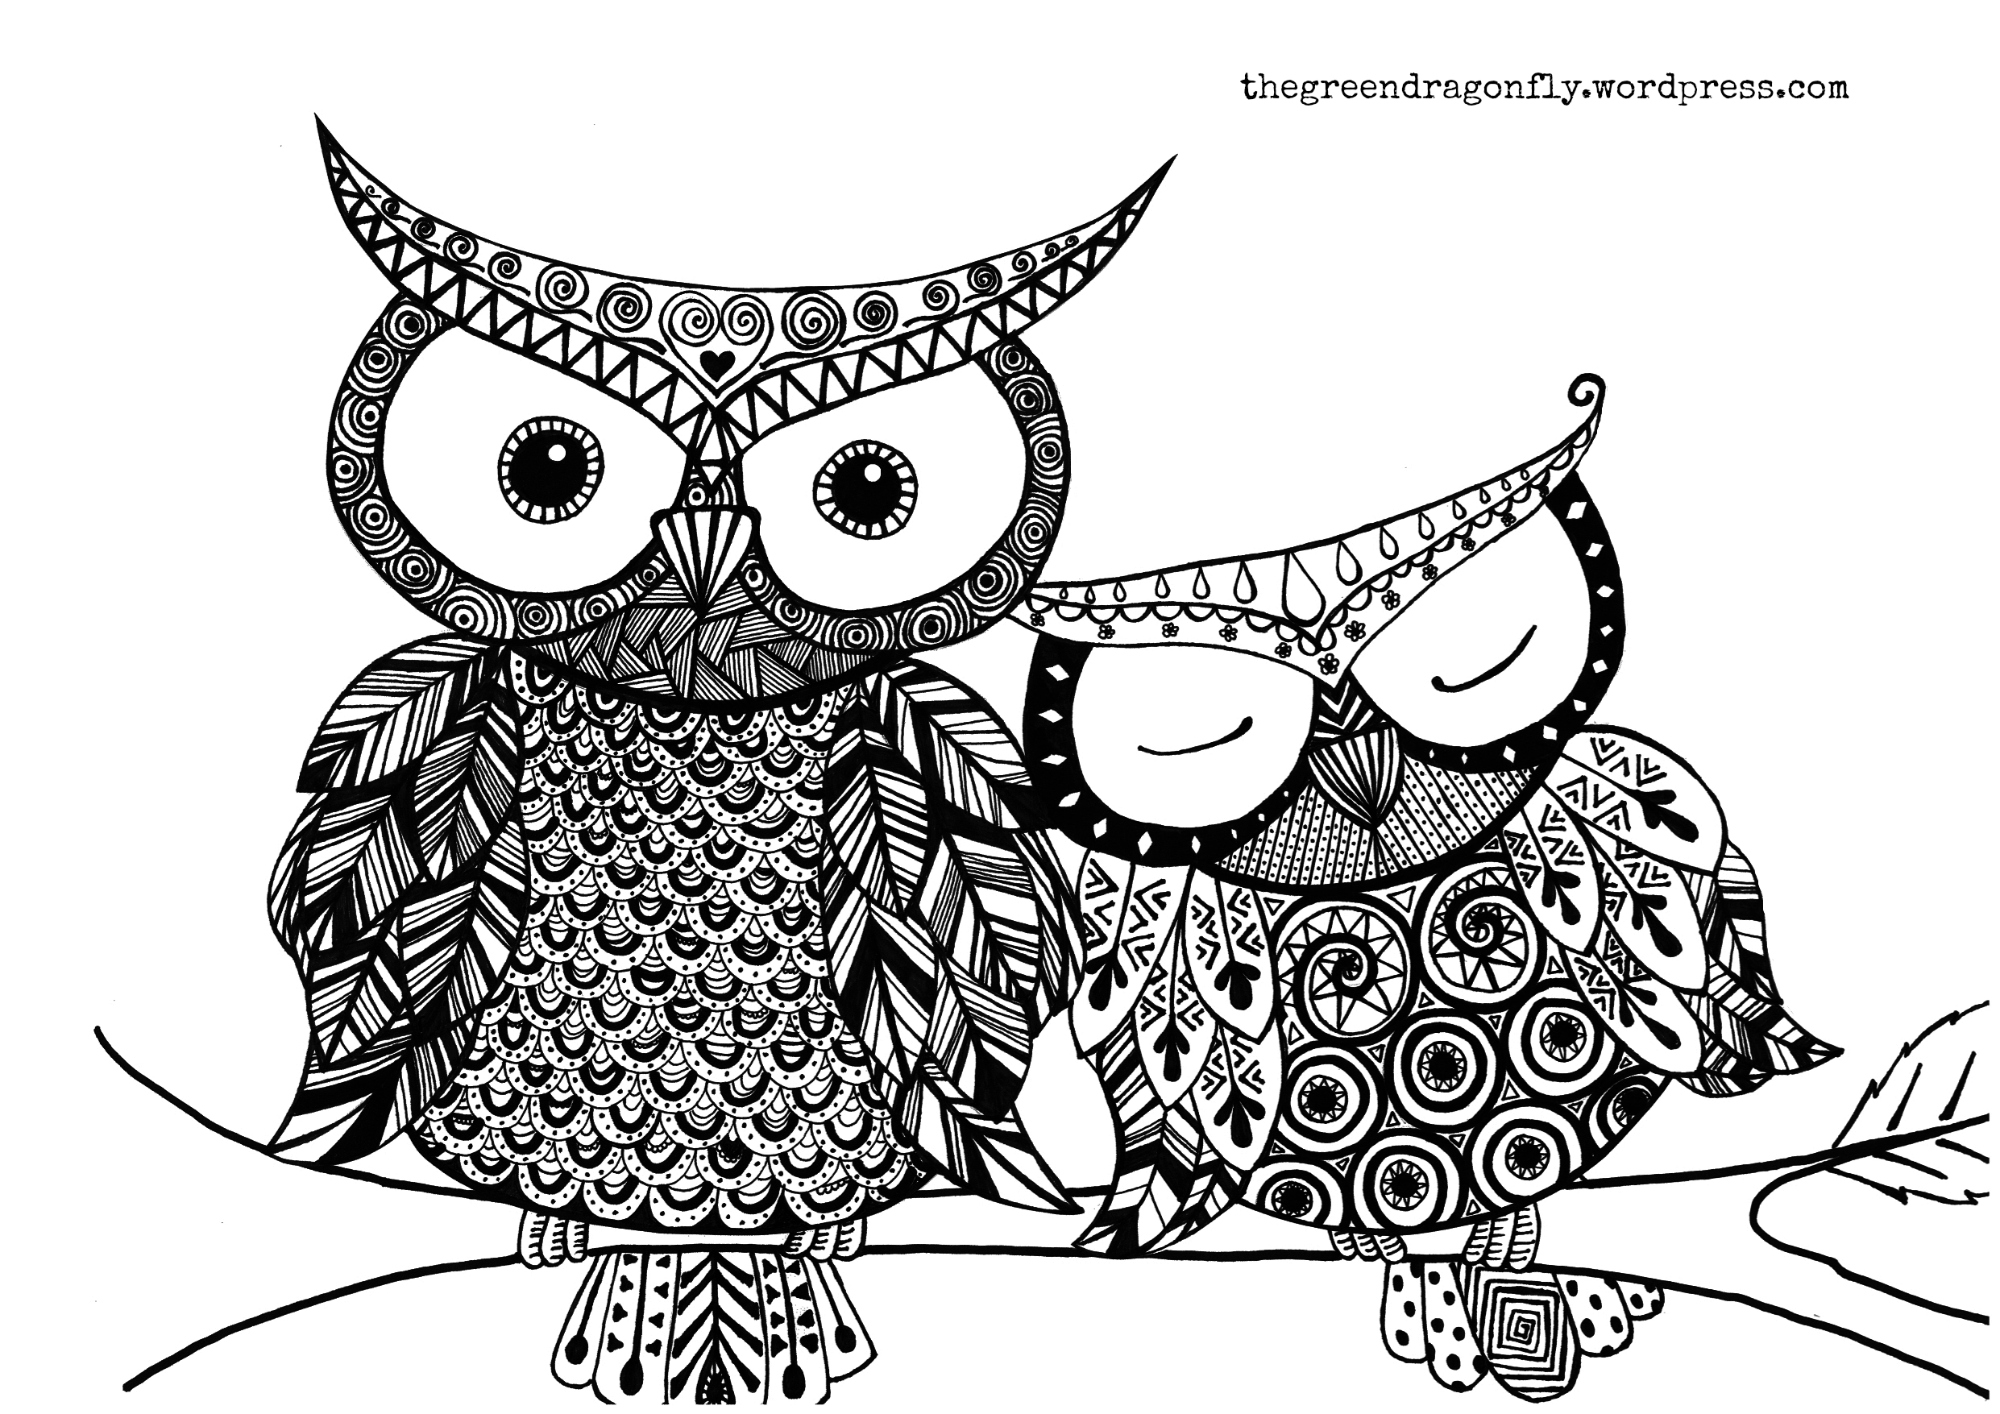 Difficult_Owl_Coloring_Pages_Hard_01